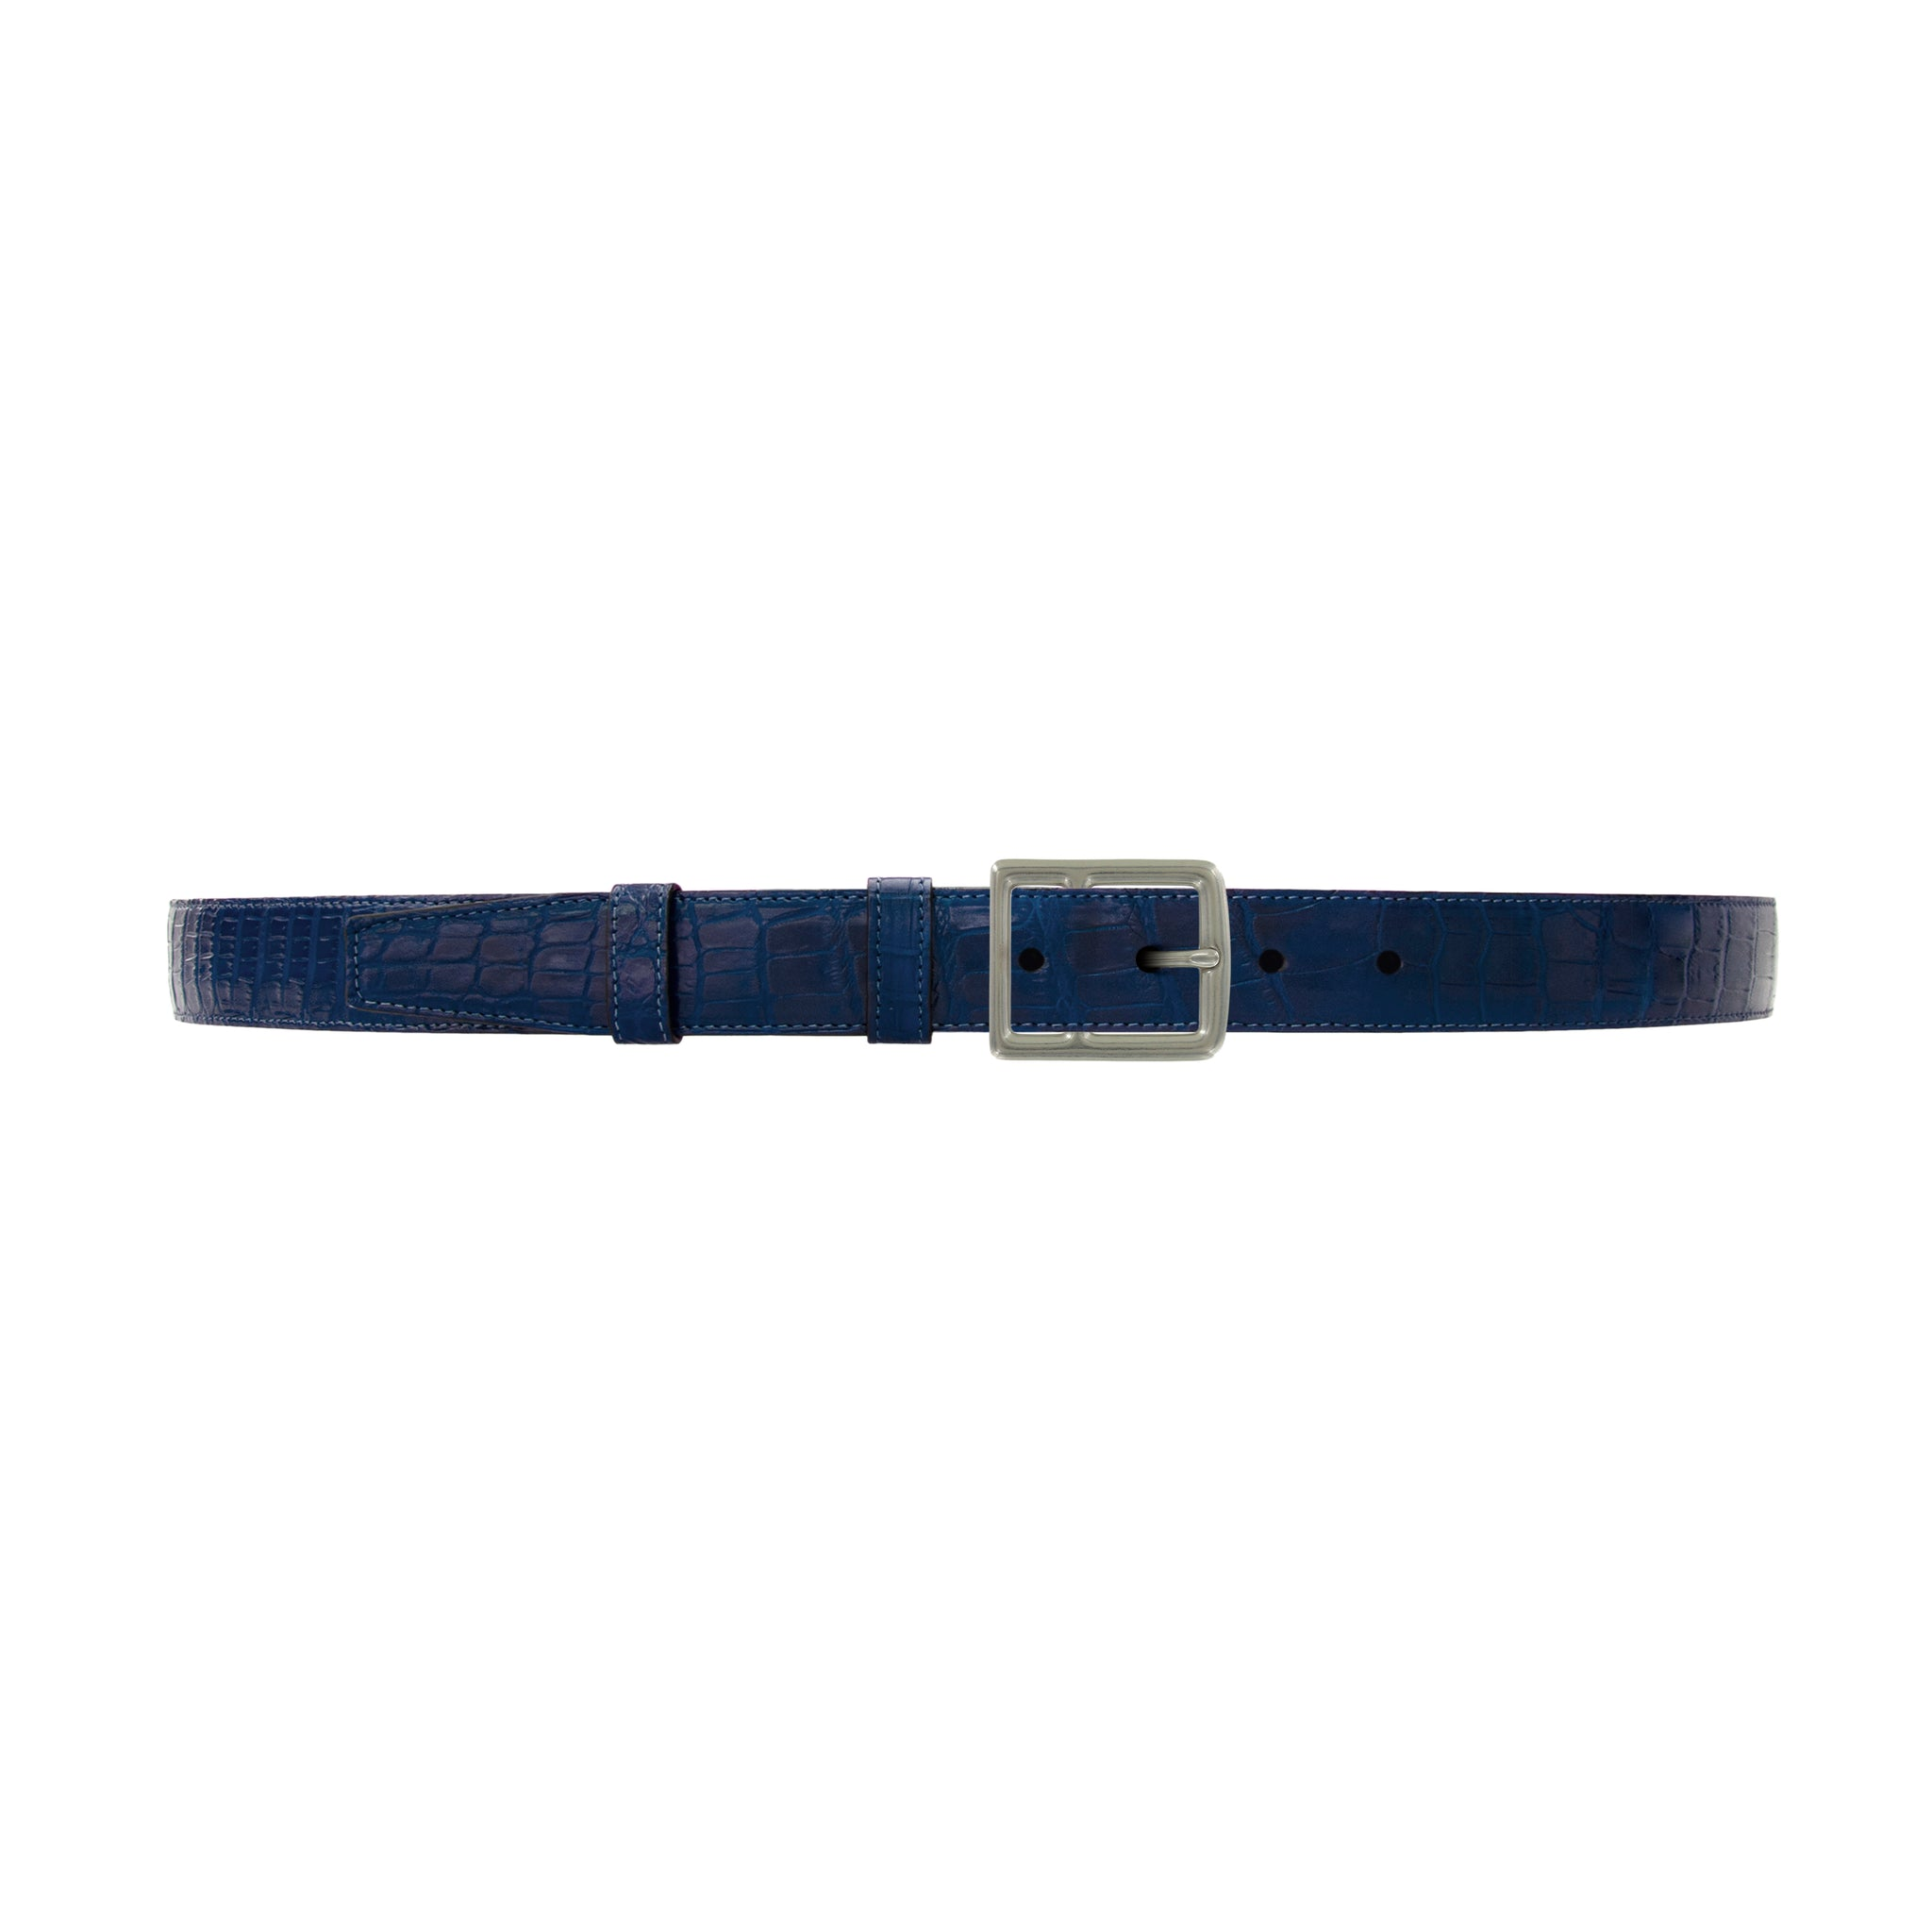 "1"" Royal Seasonal Belt with Crawford Casual Buckle in Matt Nickel"